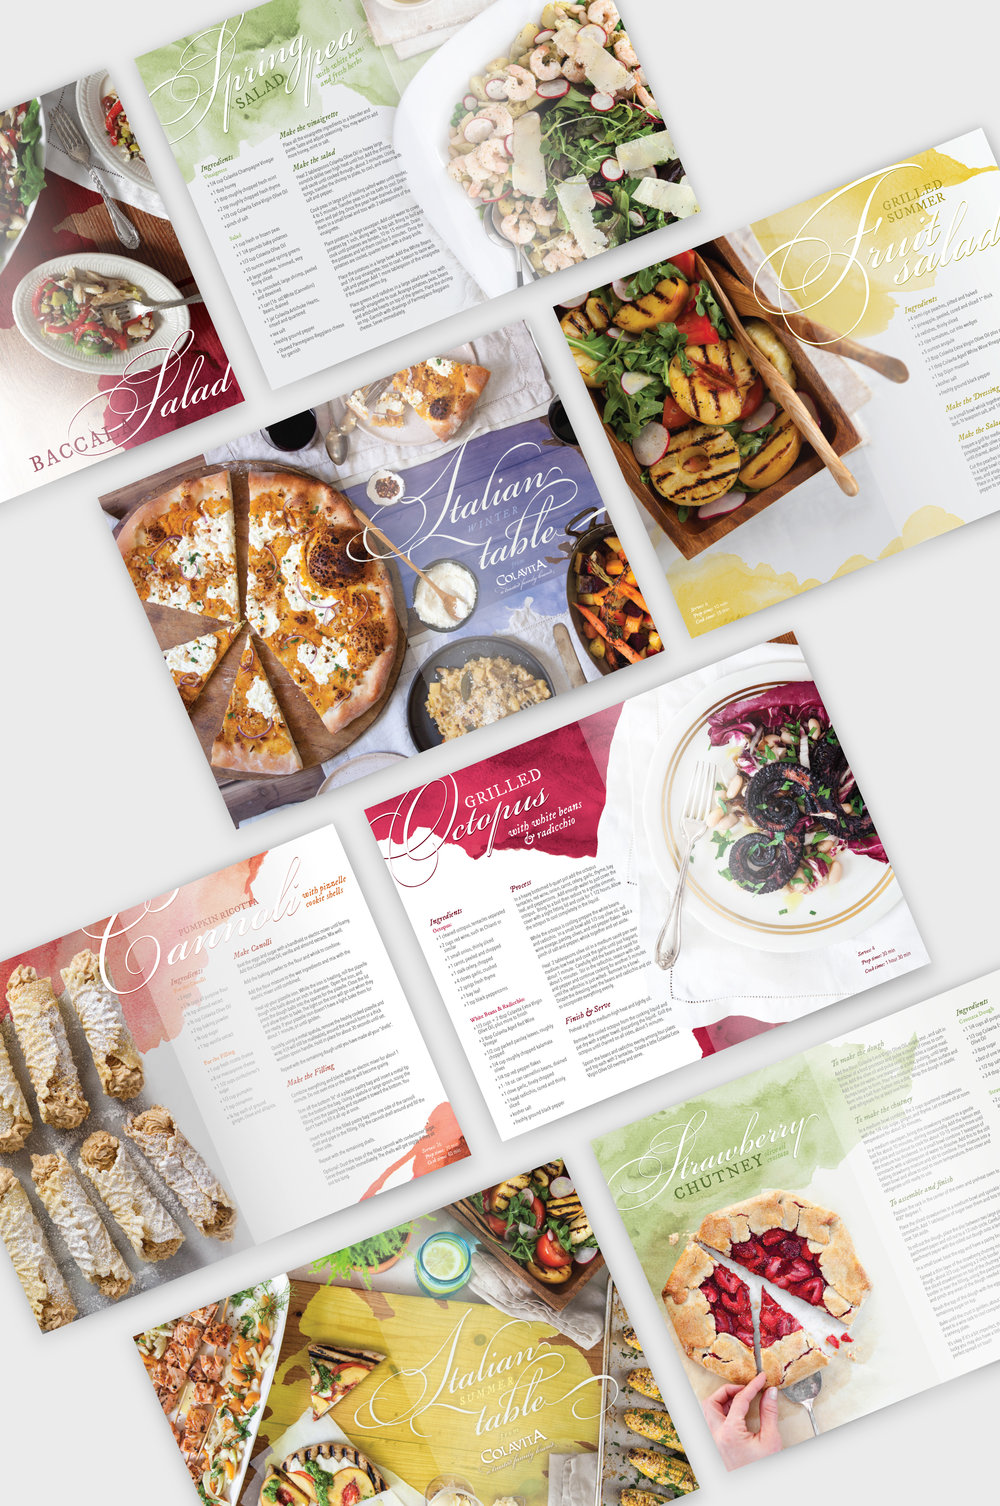 Colavita-Cookbook-Recipe-Design-Brochure-Watercolor.jpg